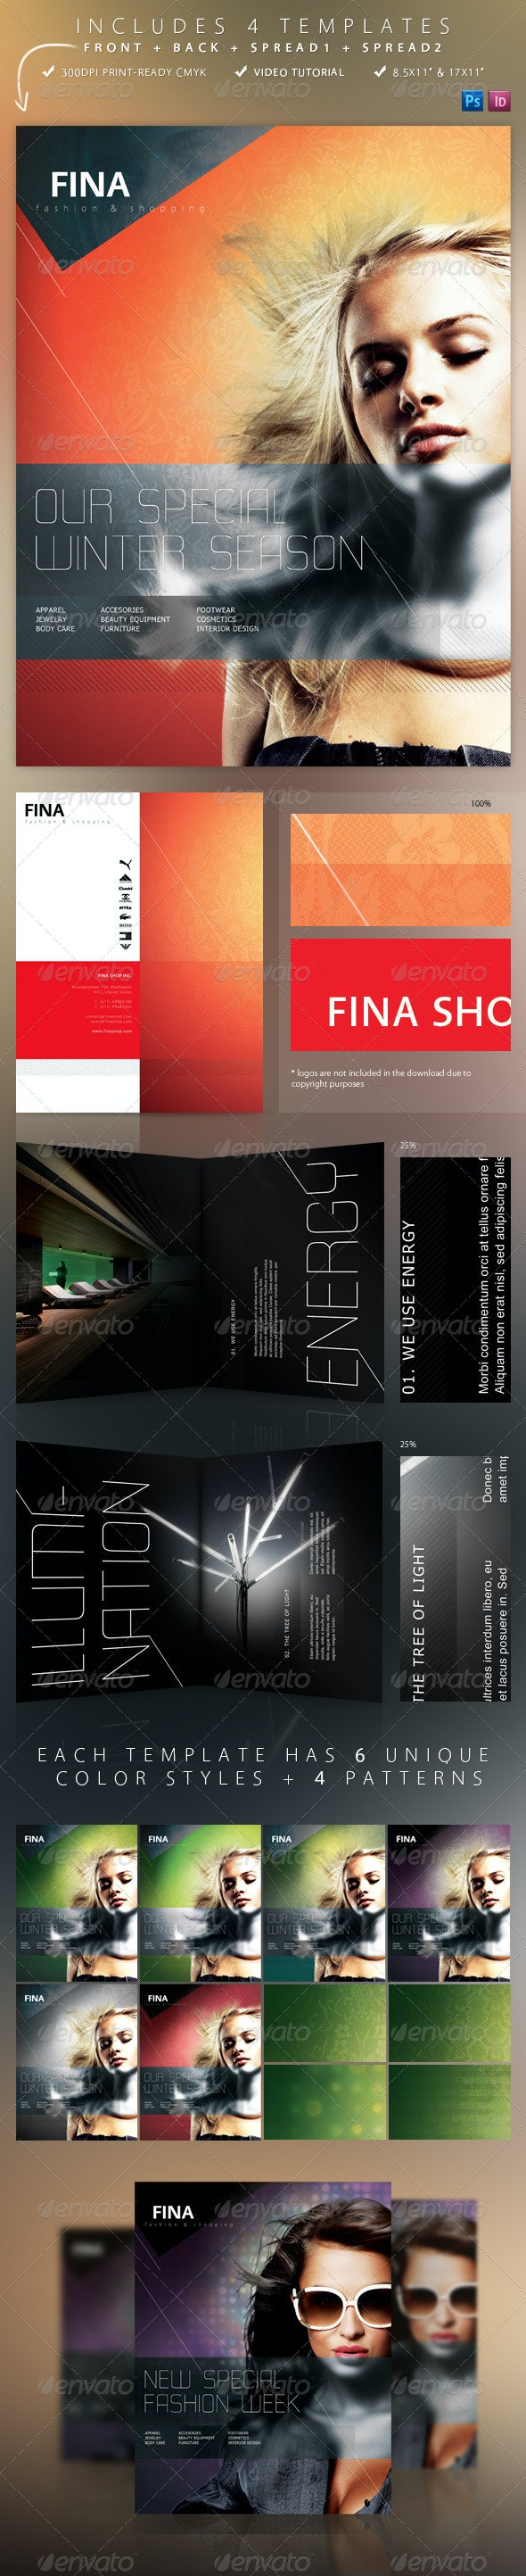 Fina Brochure - Fashion&Shopping 4 Templates - Corporate Brochures